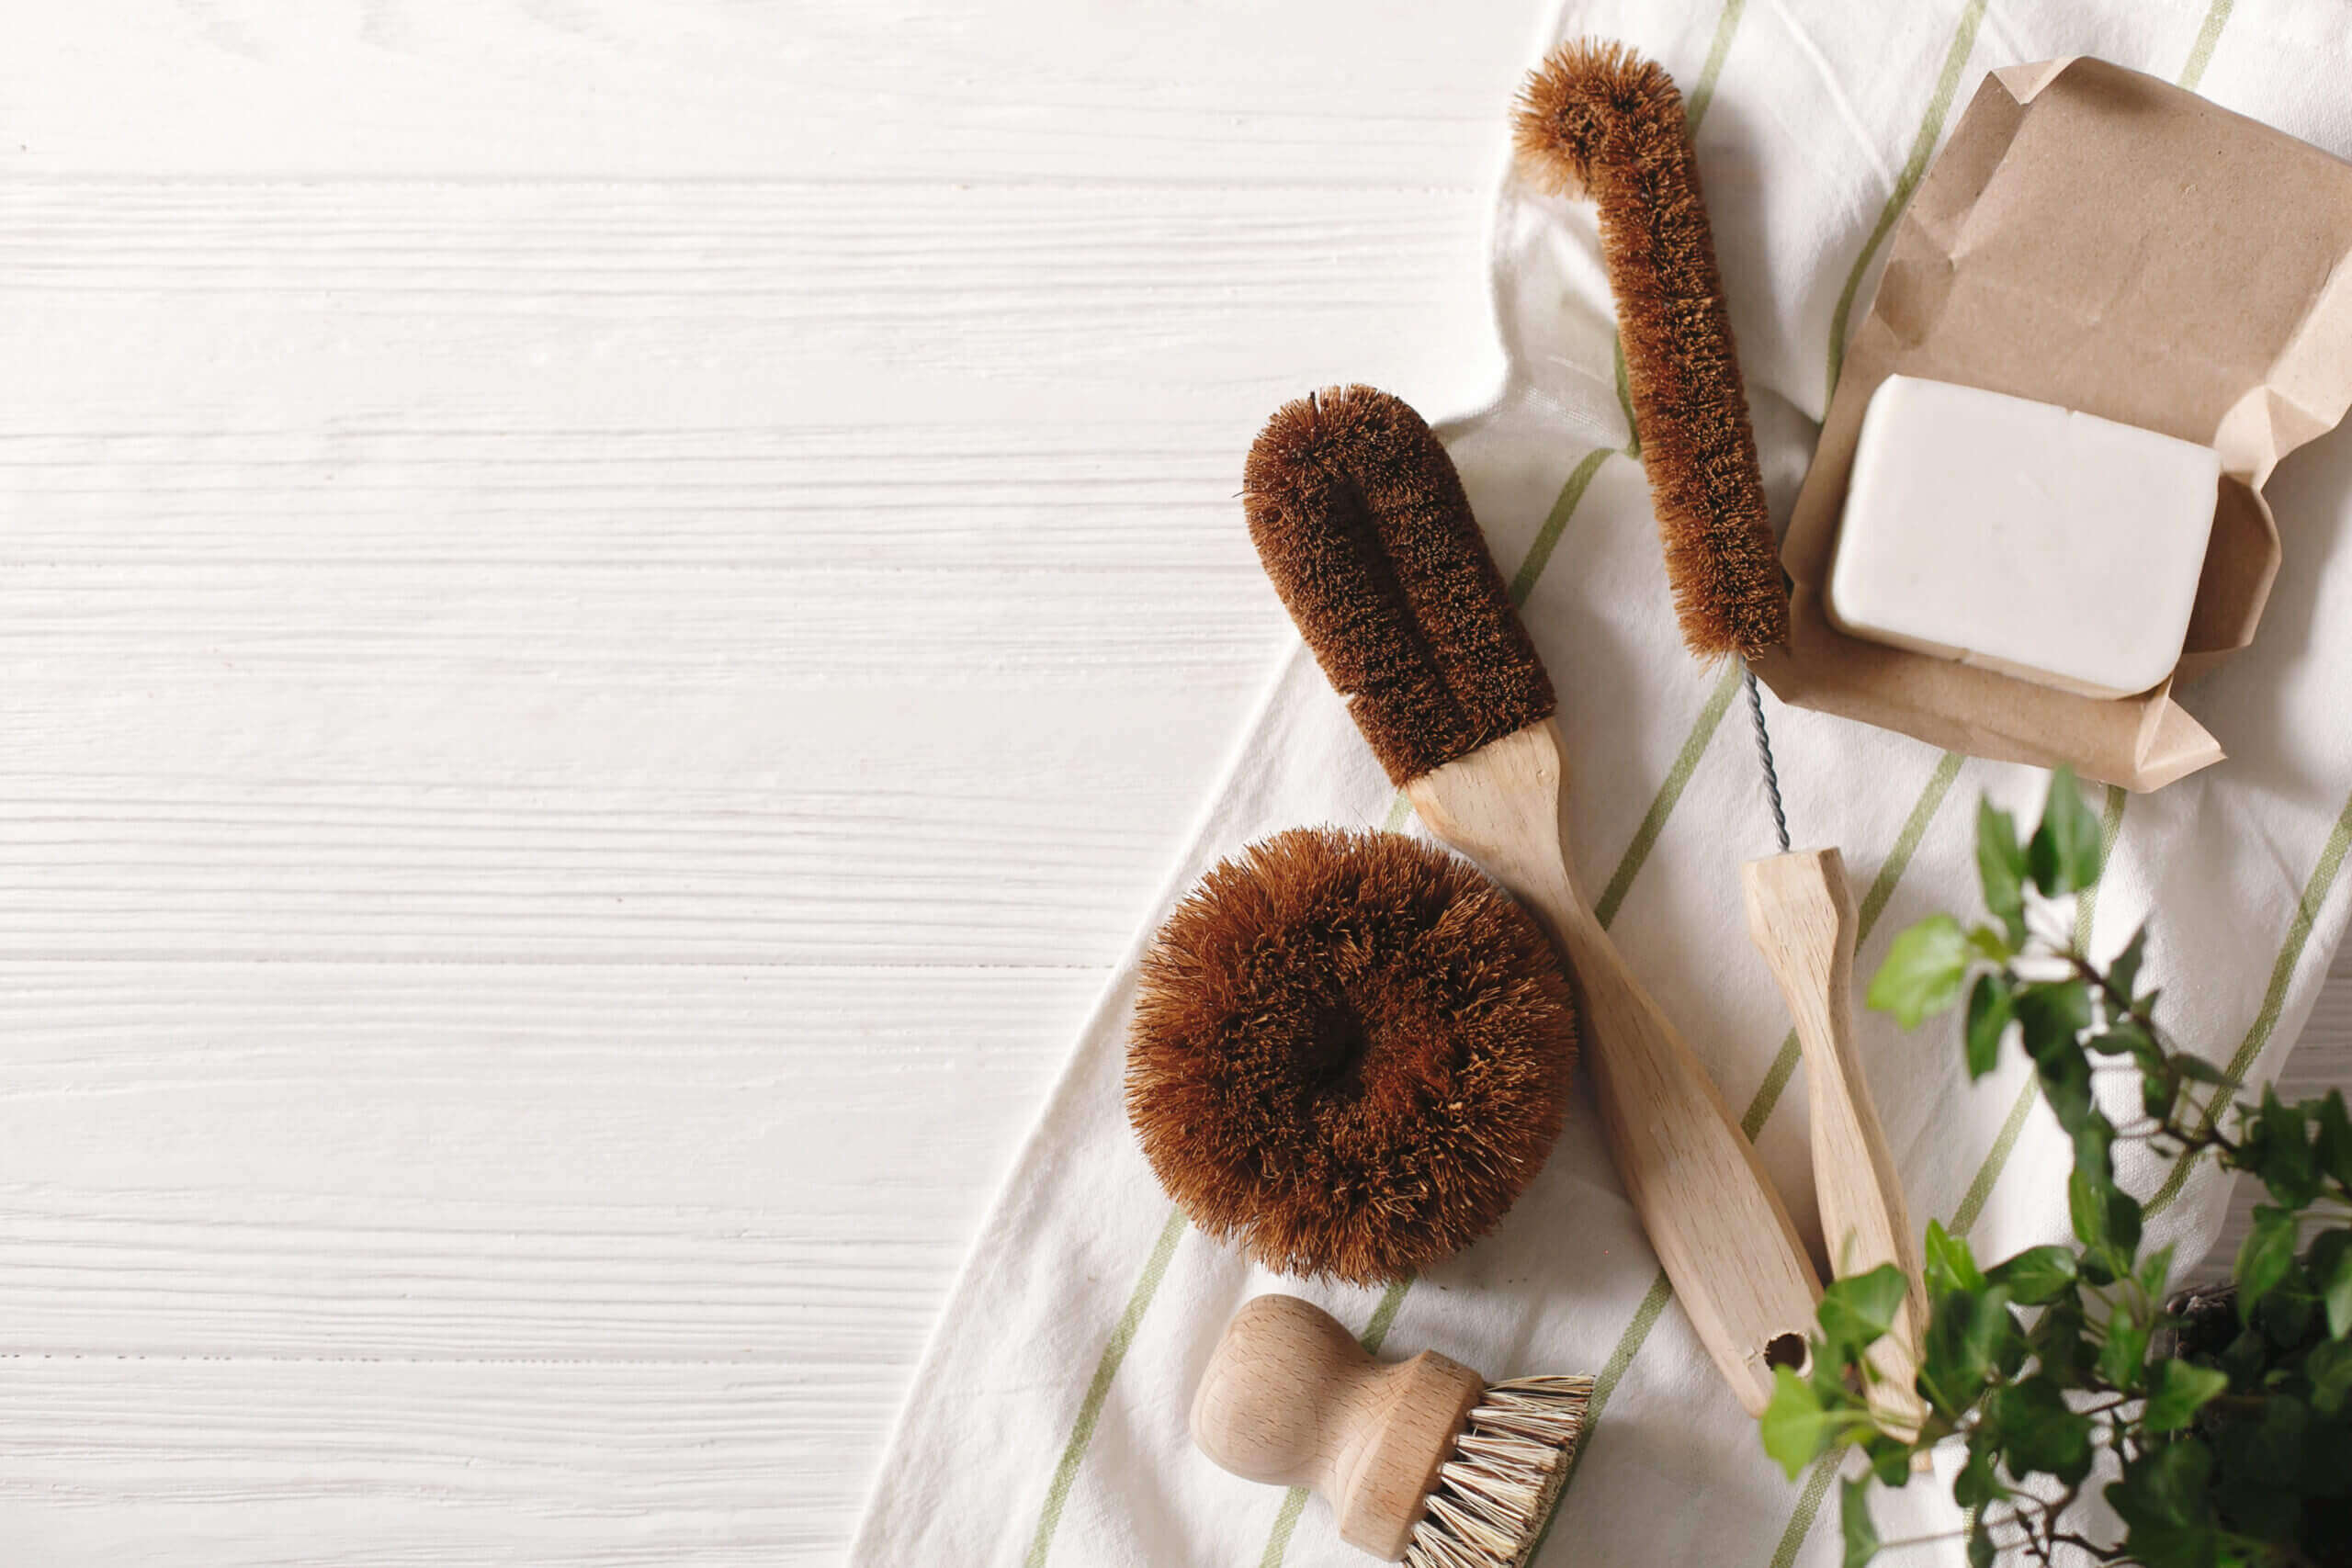 5 Reasons to swap to natural cleaning products